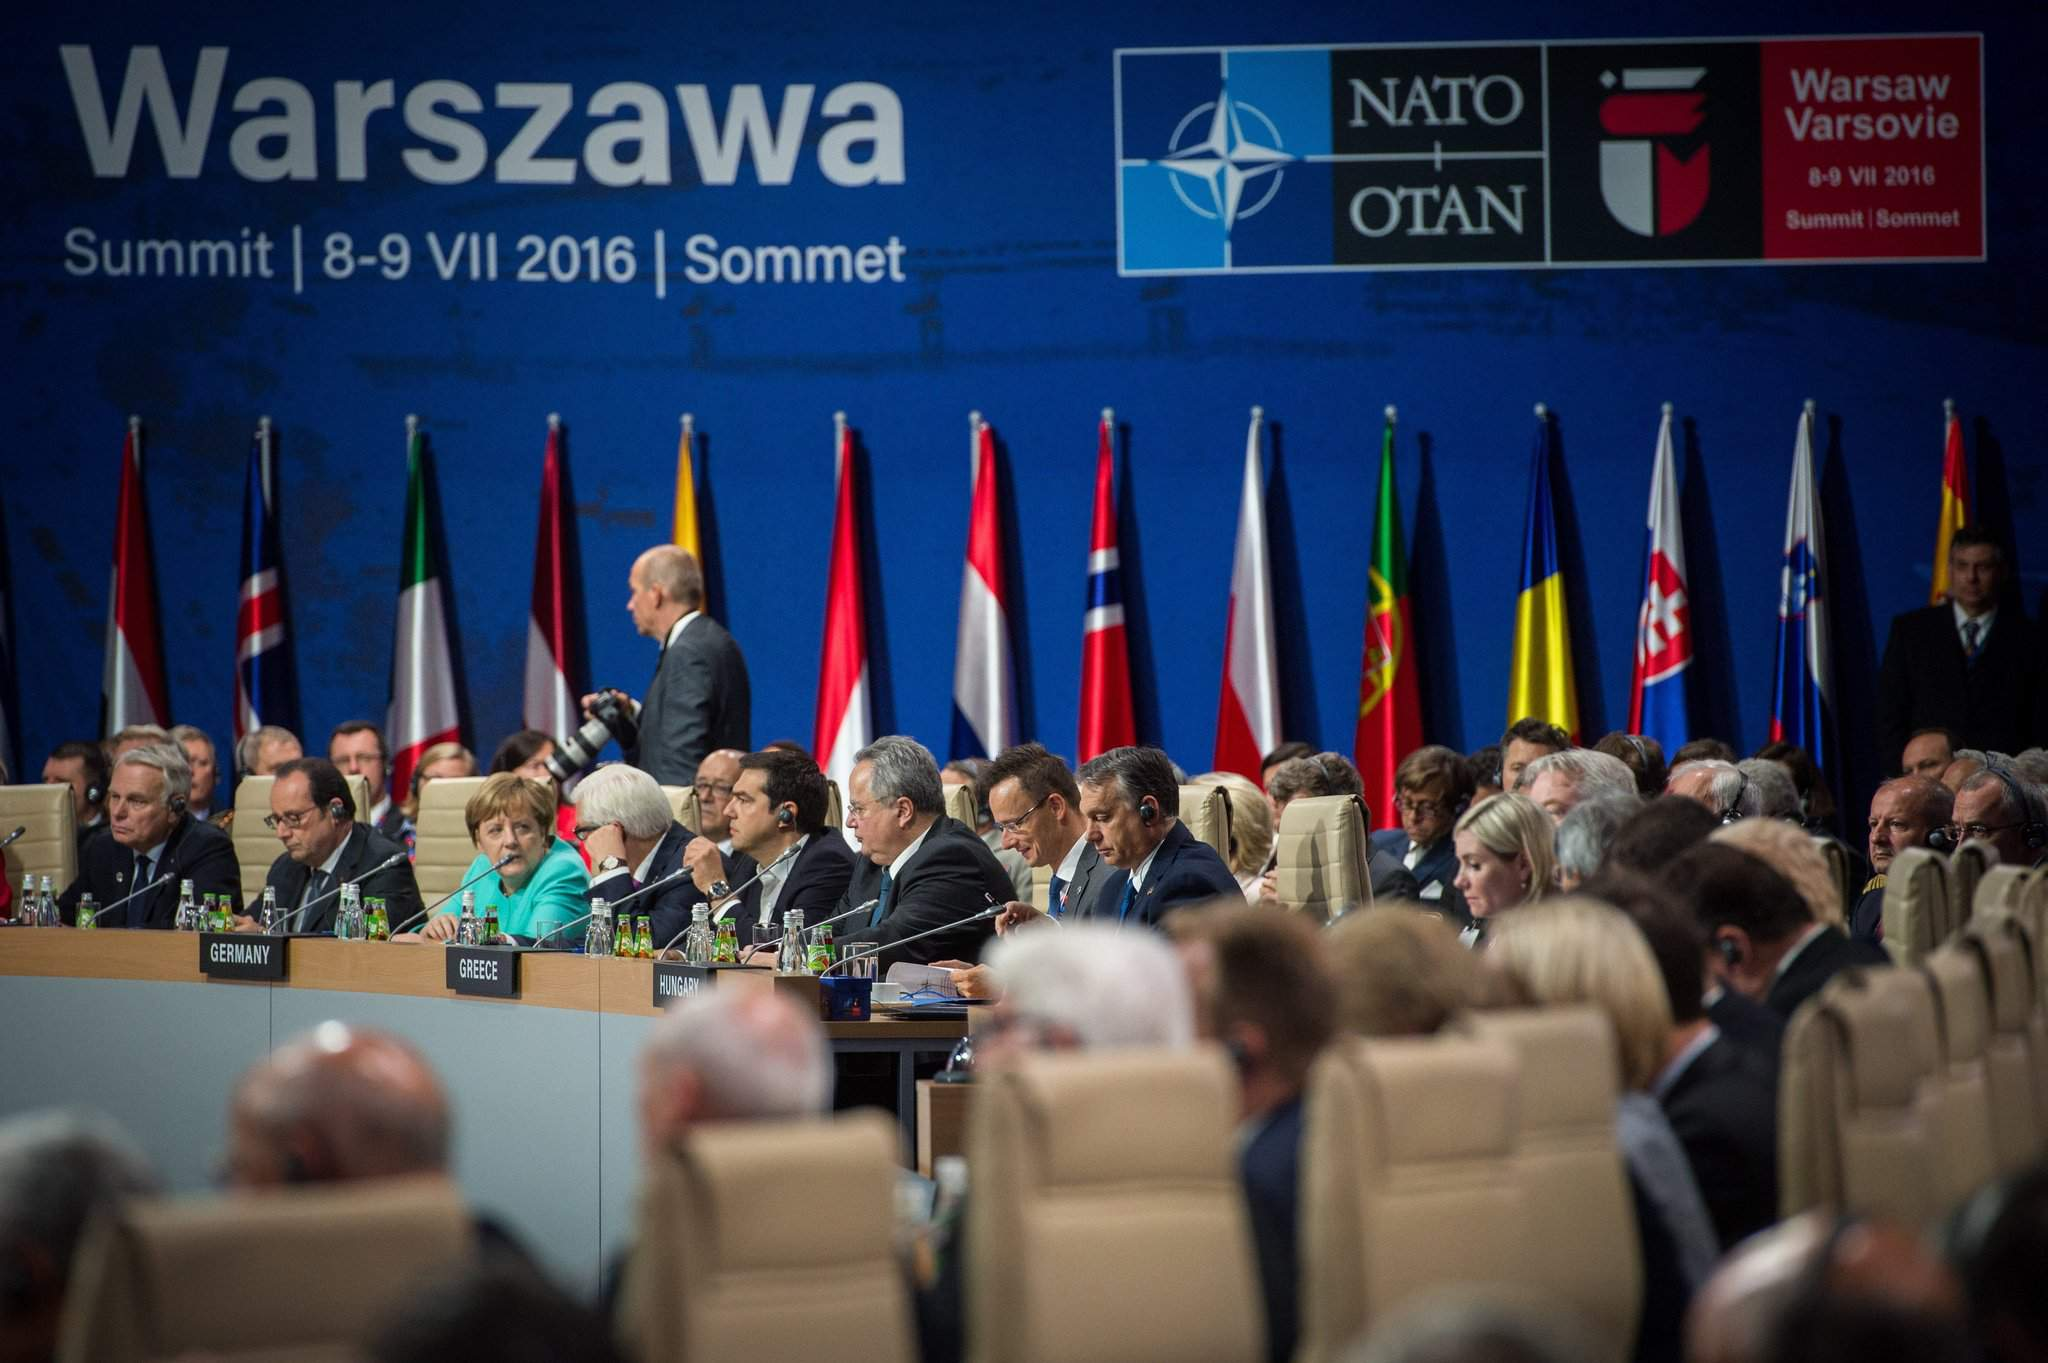 Szijjarto at NATO summit: Hungary 'doing well' in defence spending